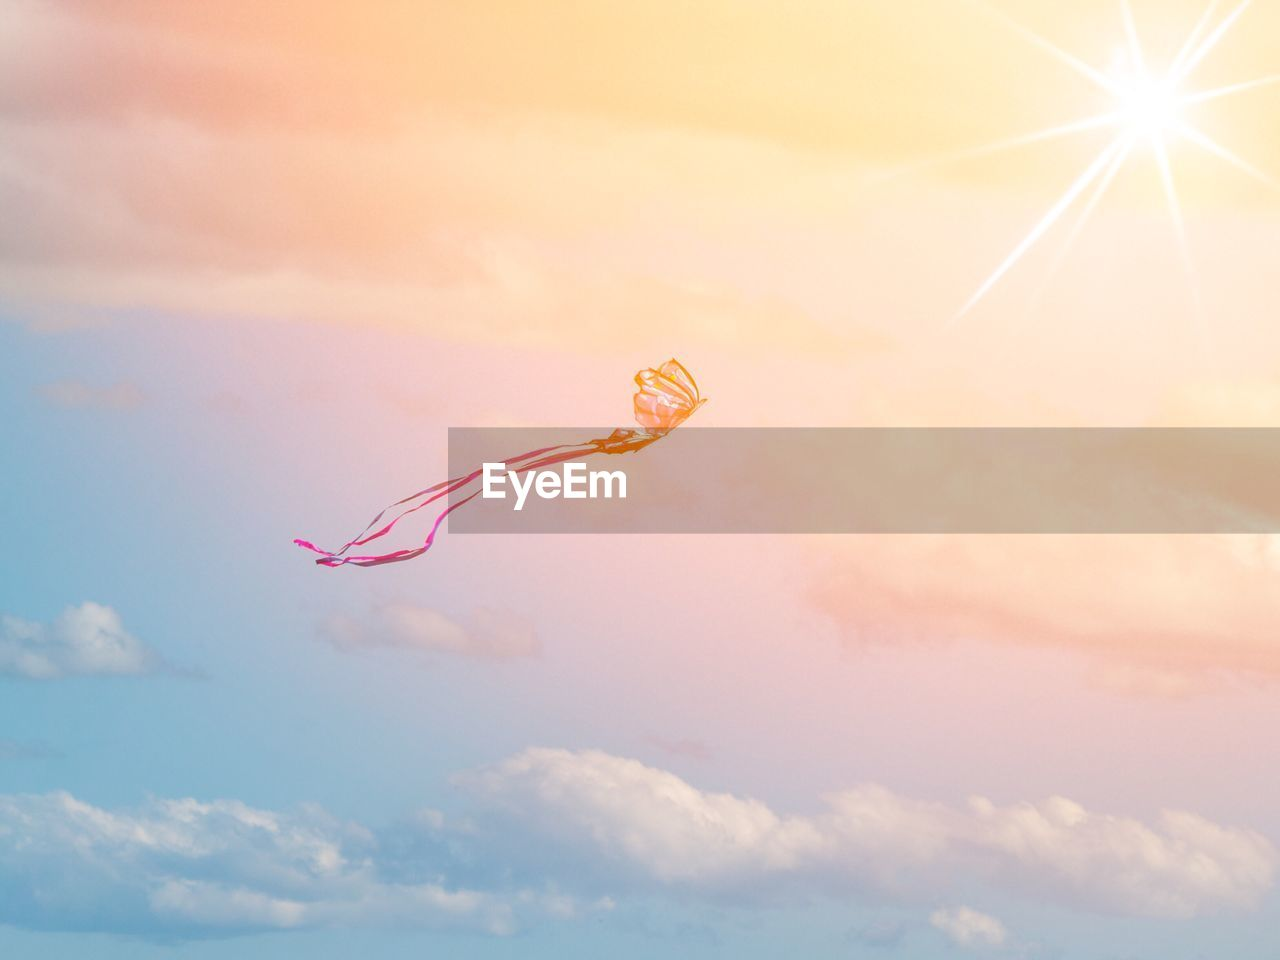 sky, beauty in nature, cloud - sky, nature, mid-air, no people, animal, sunset, flying, animal themes, orange color, tranquility, animal wildlife, scenics - nature, low angle view, outdoors, animals in the wild, day, tranquil scene, one animal